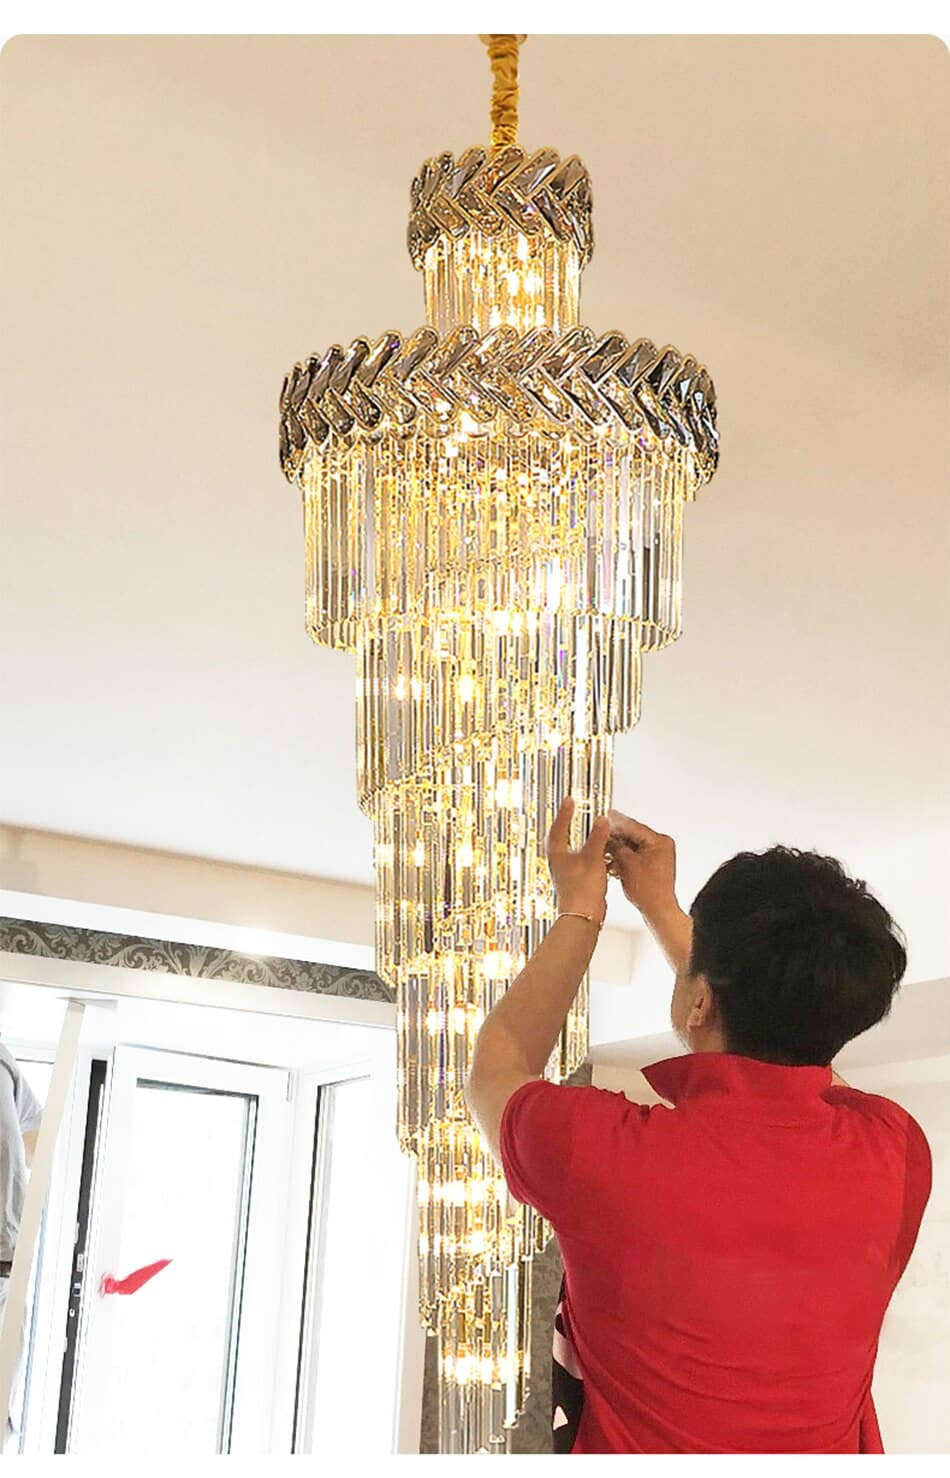 Chandelier in the Hall Living Room Top Long Smoky Gray Crystal Lamps Gold Staircase Lighting Illuminator